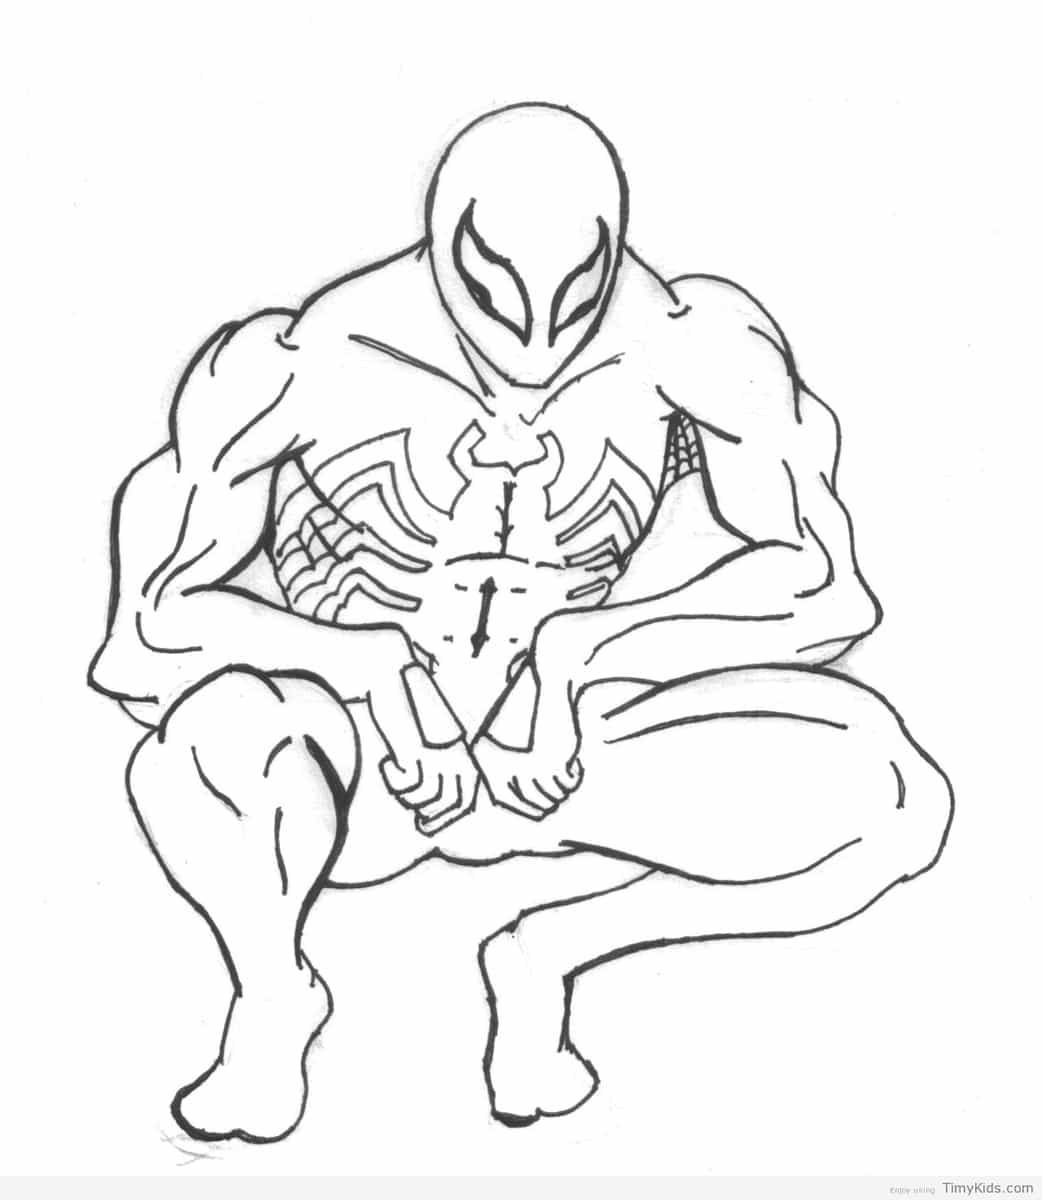 1042x1200 Black Suit Spiderman Coloring Pages Timykids